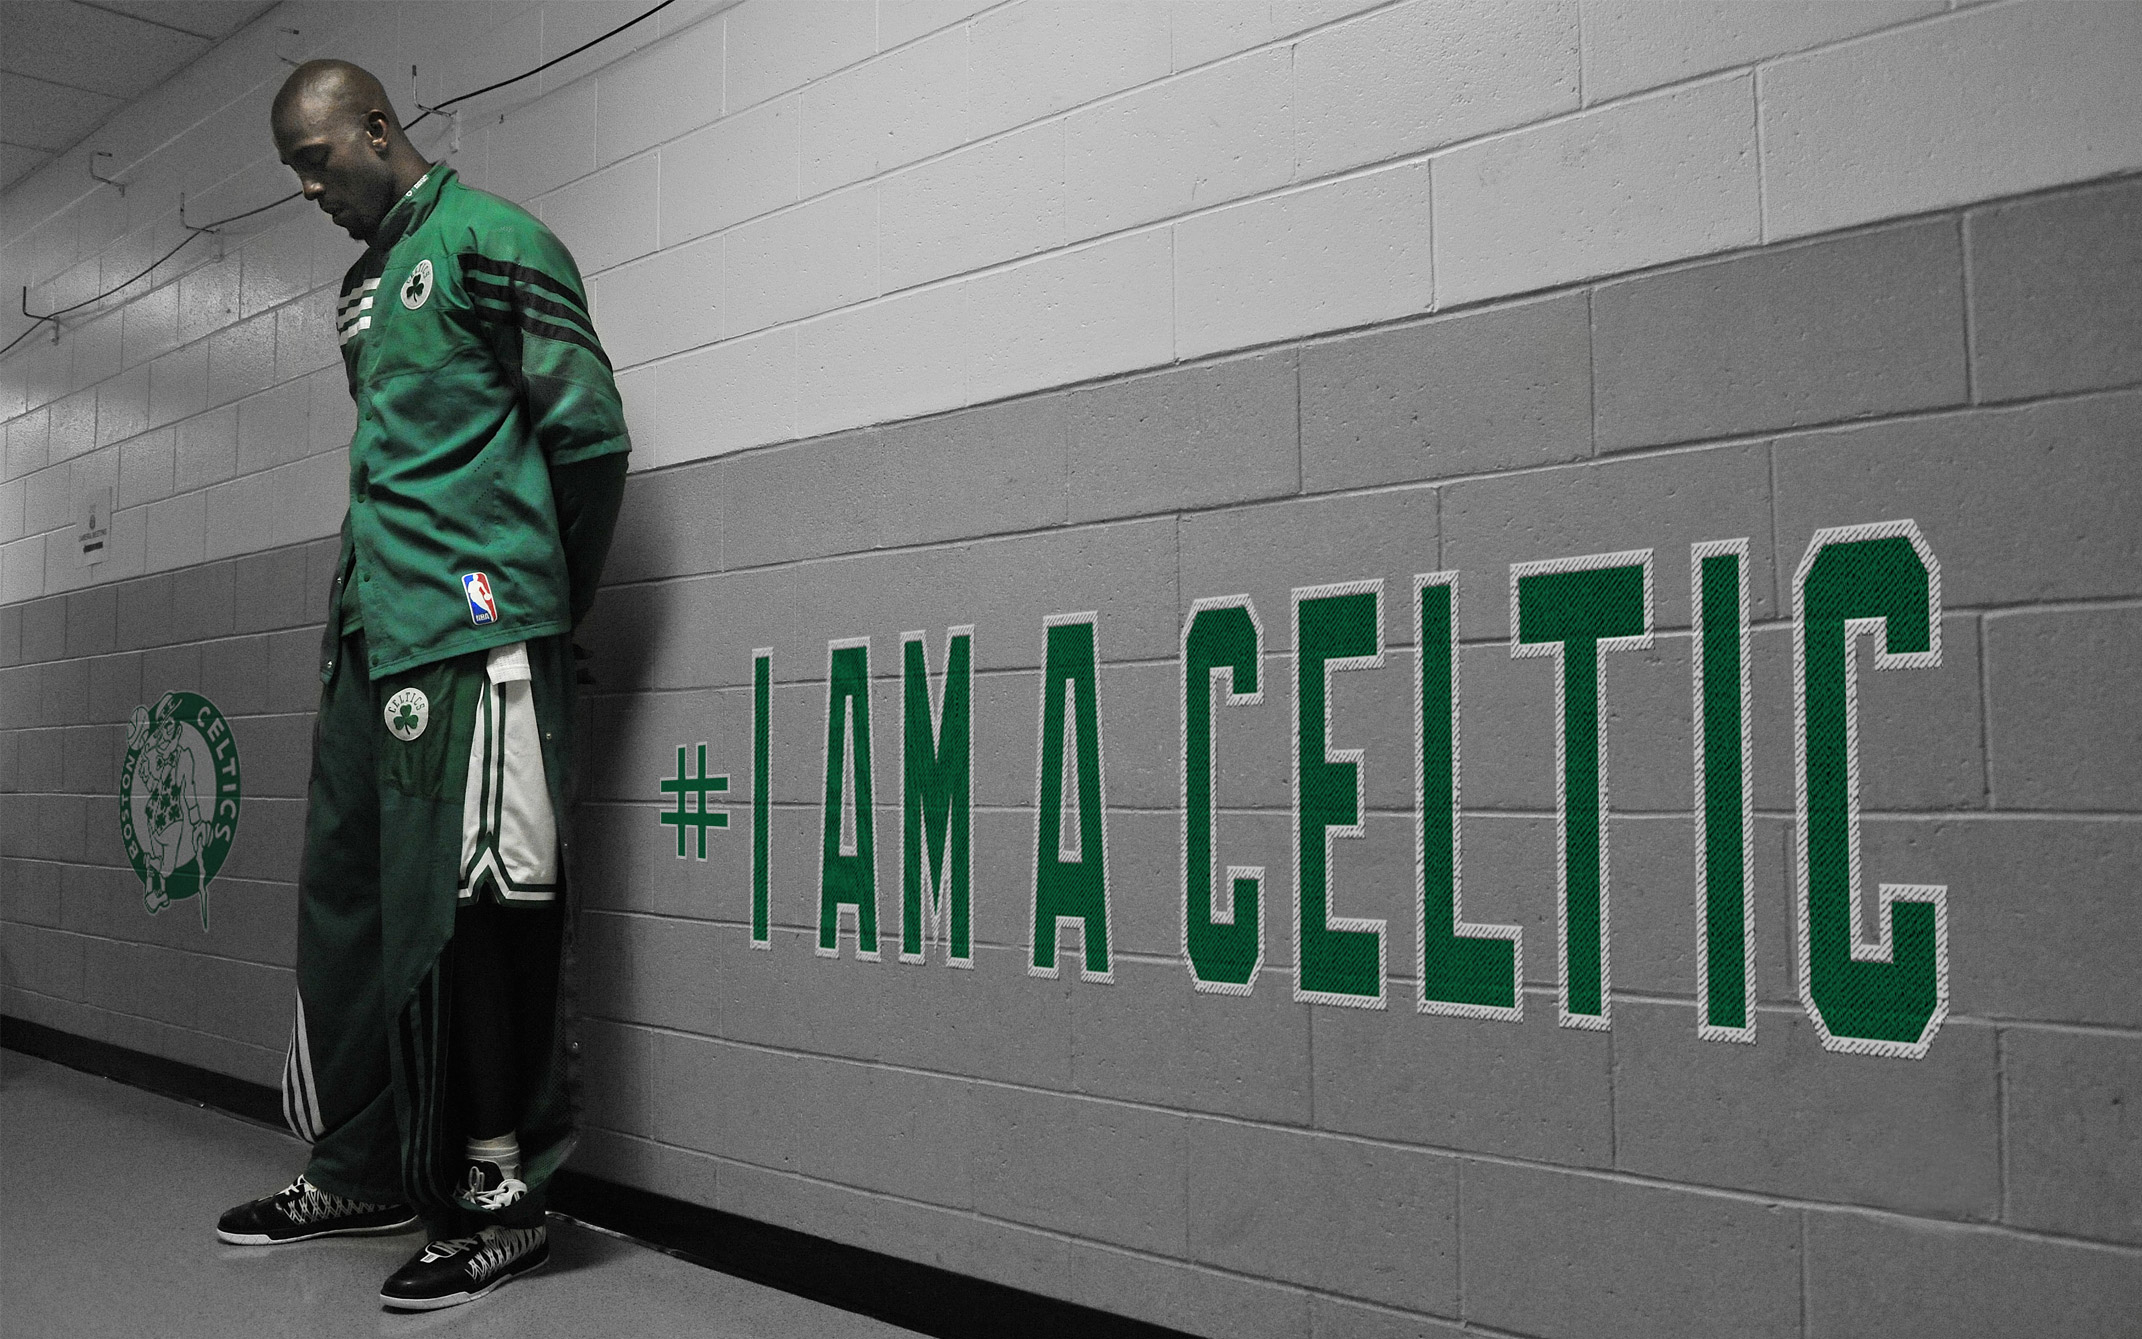 Boston celtics wallpapers images photos pictures backgrounds - Free boston celtics wallpaper ...